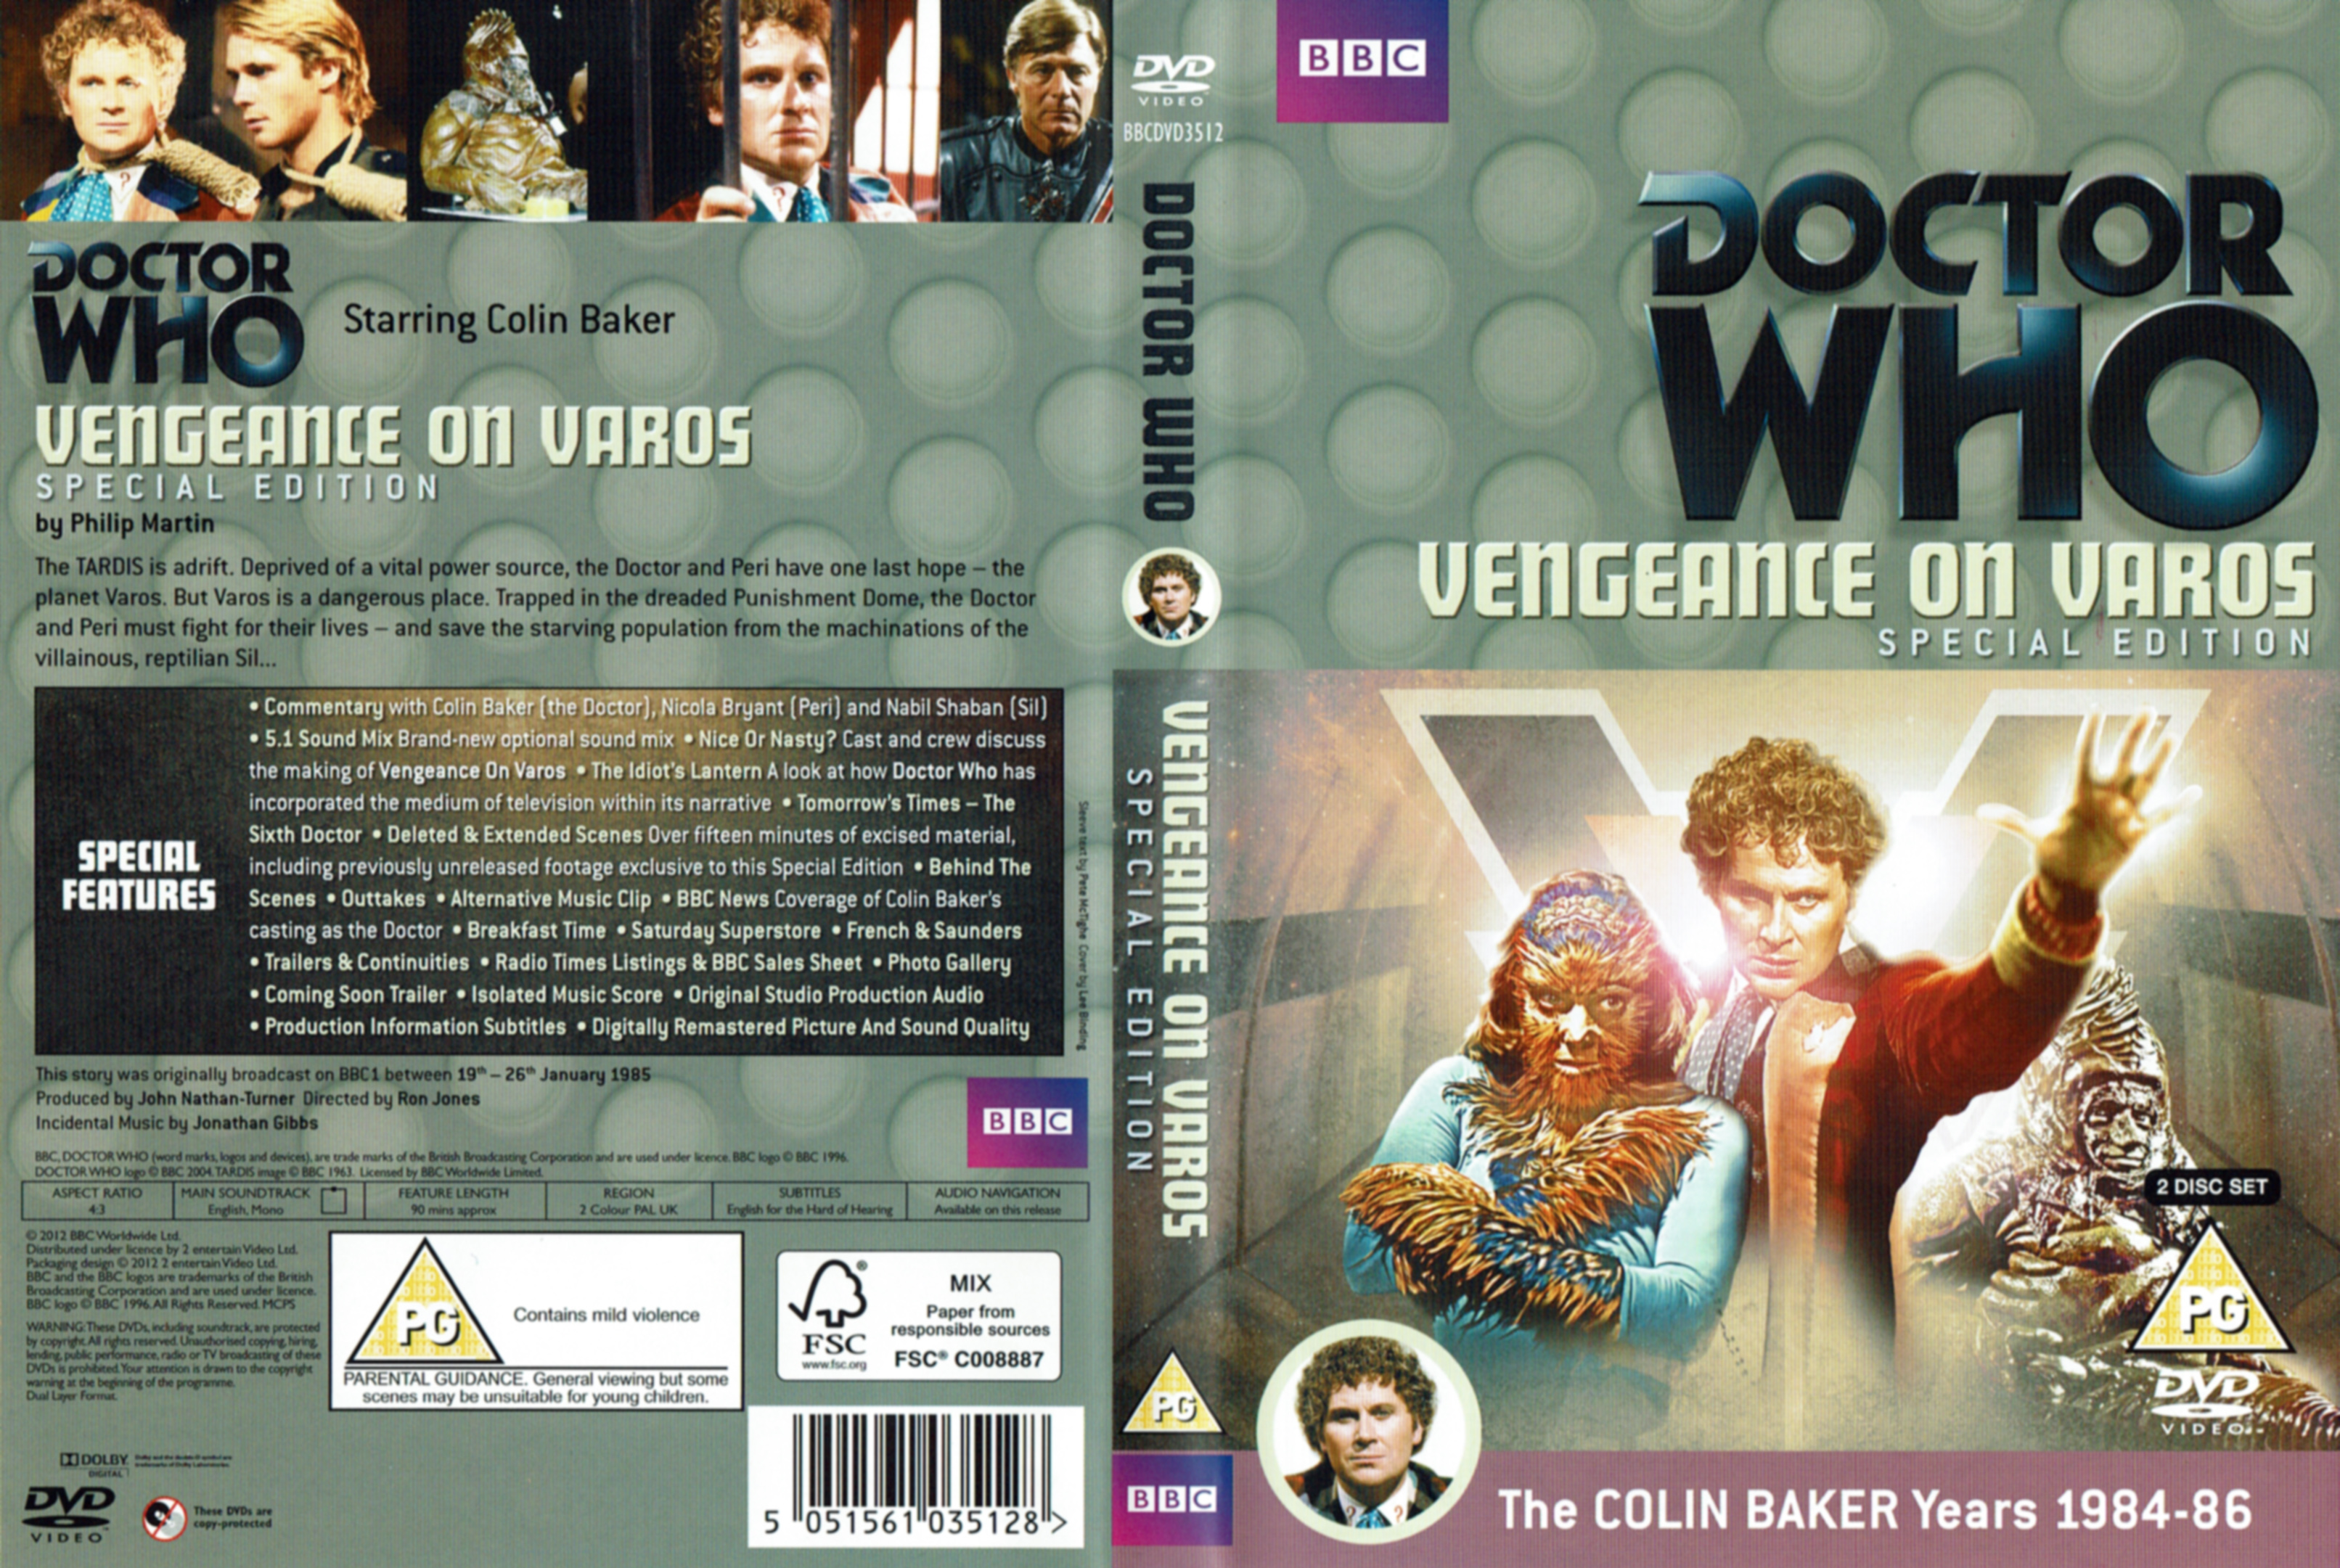 Vengeance on Varos Special Edition